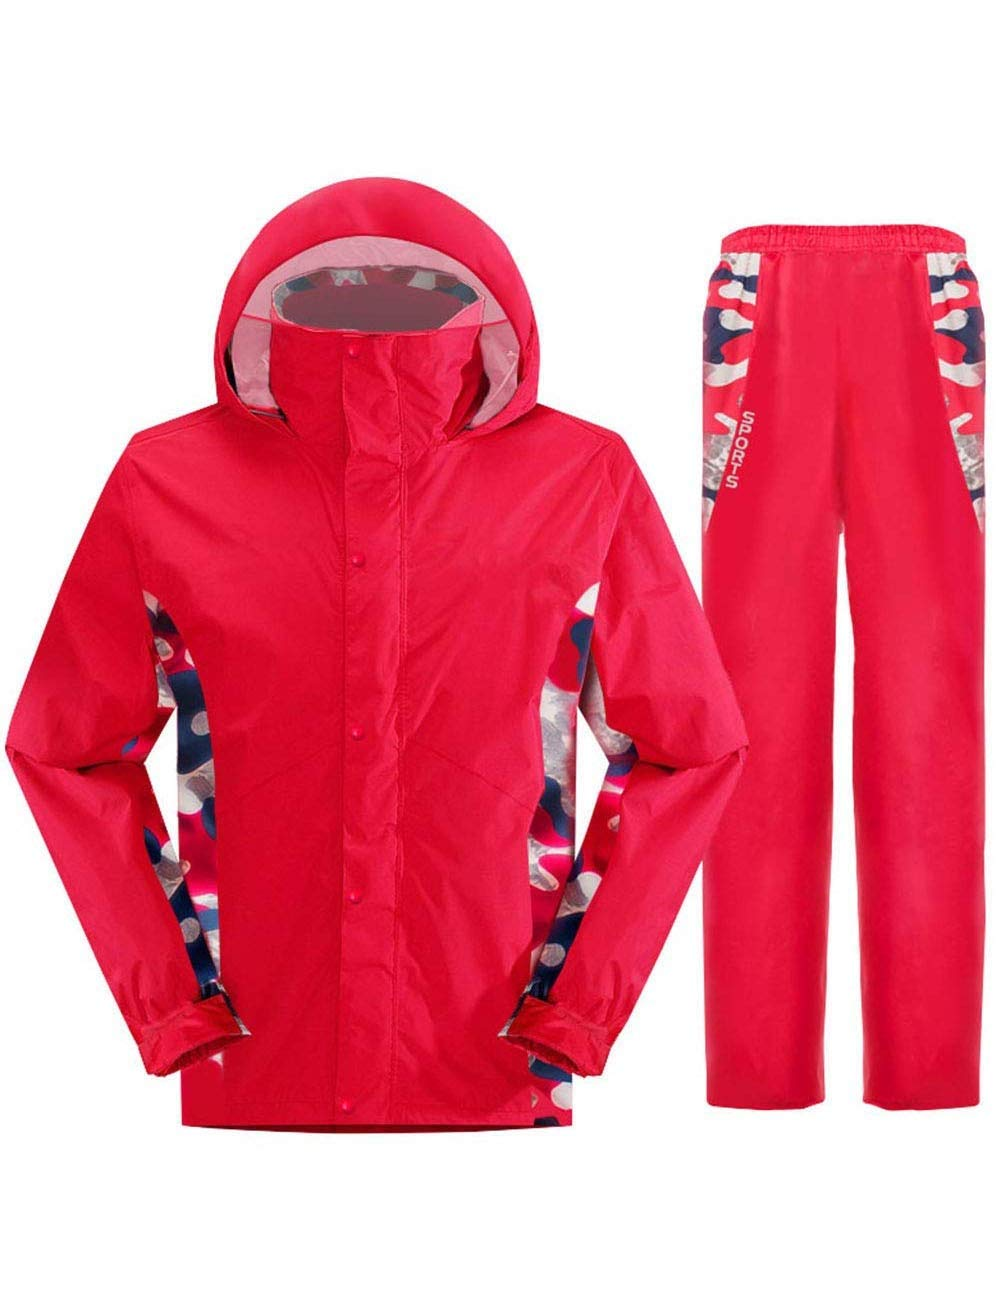 Waterproof Raincoat Breathable Light Rain Jacket and Rain Pants Suit Male and Female Adult Hiking Camping Hiking Red (Size   XLarge)